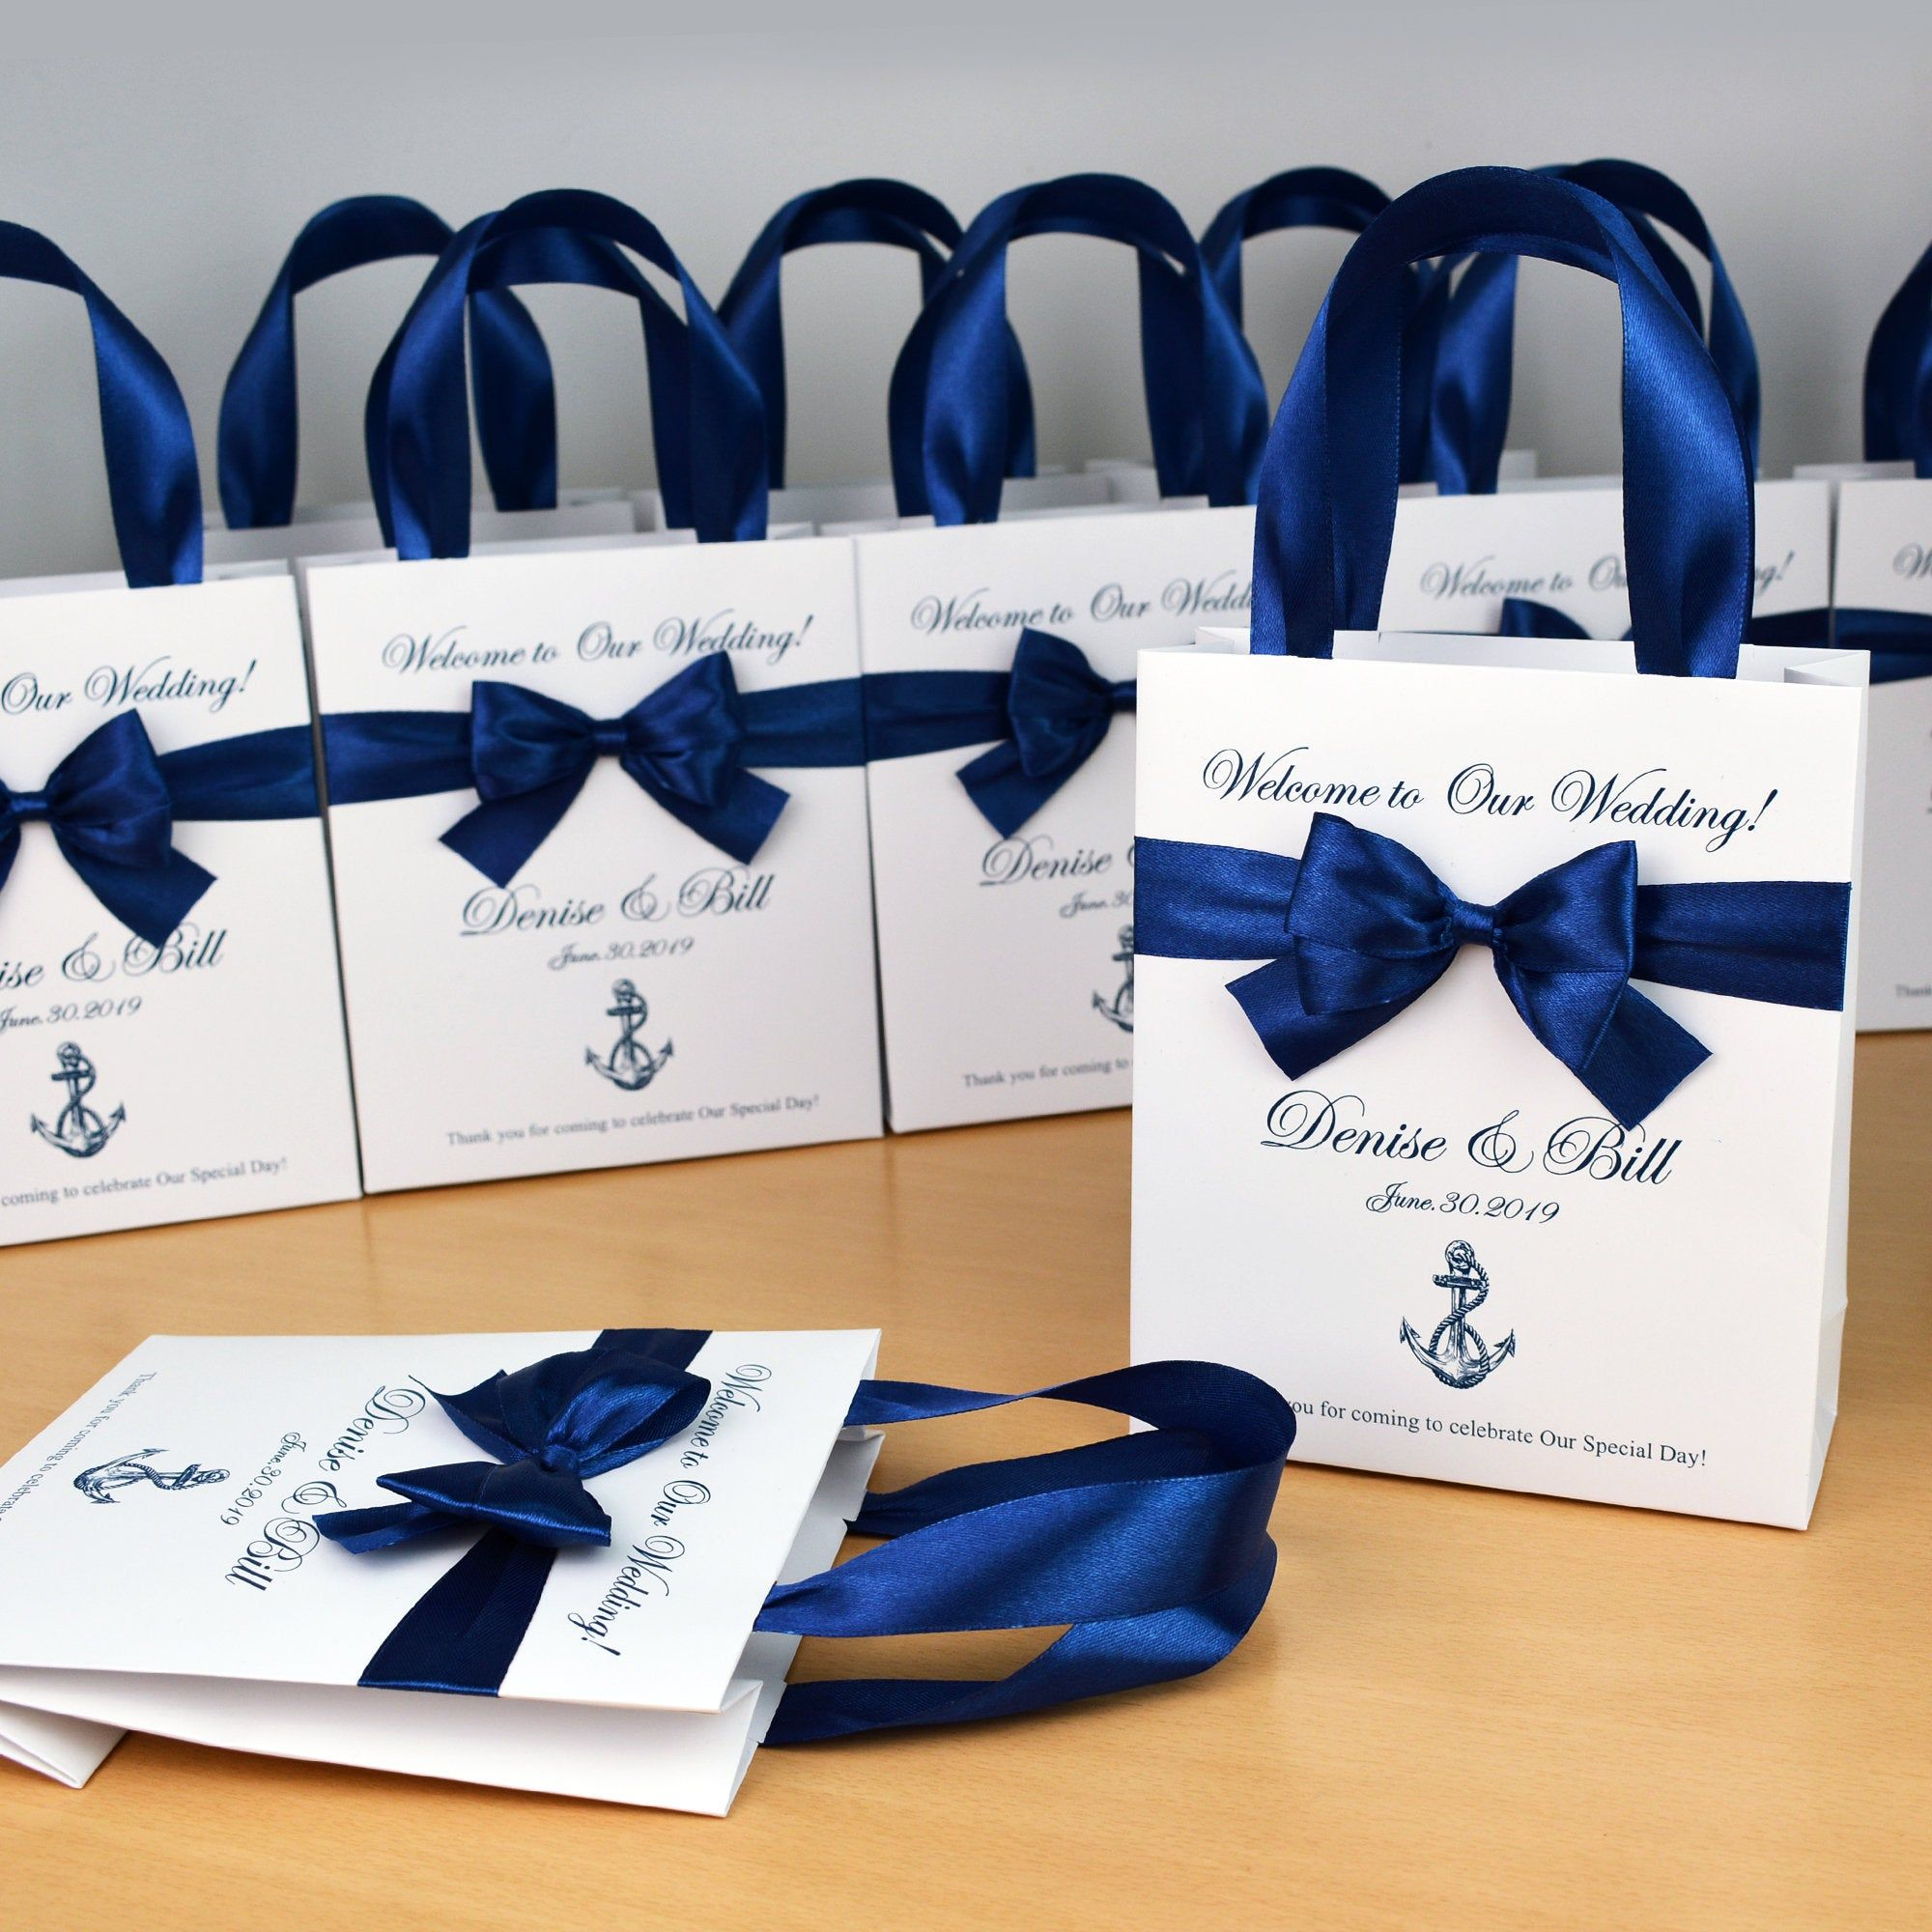 20 Nautical Wedding Welcome Bags With Satin Ribbon Handles Etsy In 2020 Wedding Party Gift Bags Destination Wedding Welcome Bag Wedding Goodie Bags